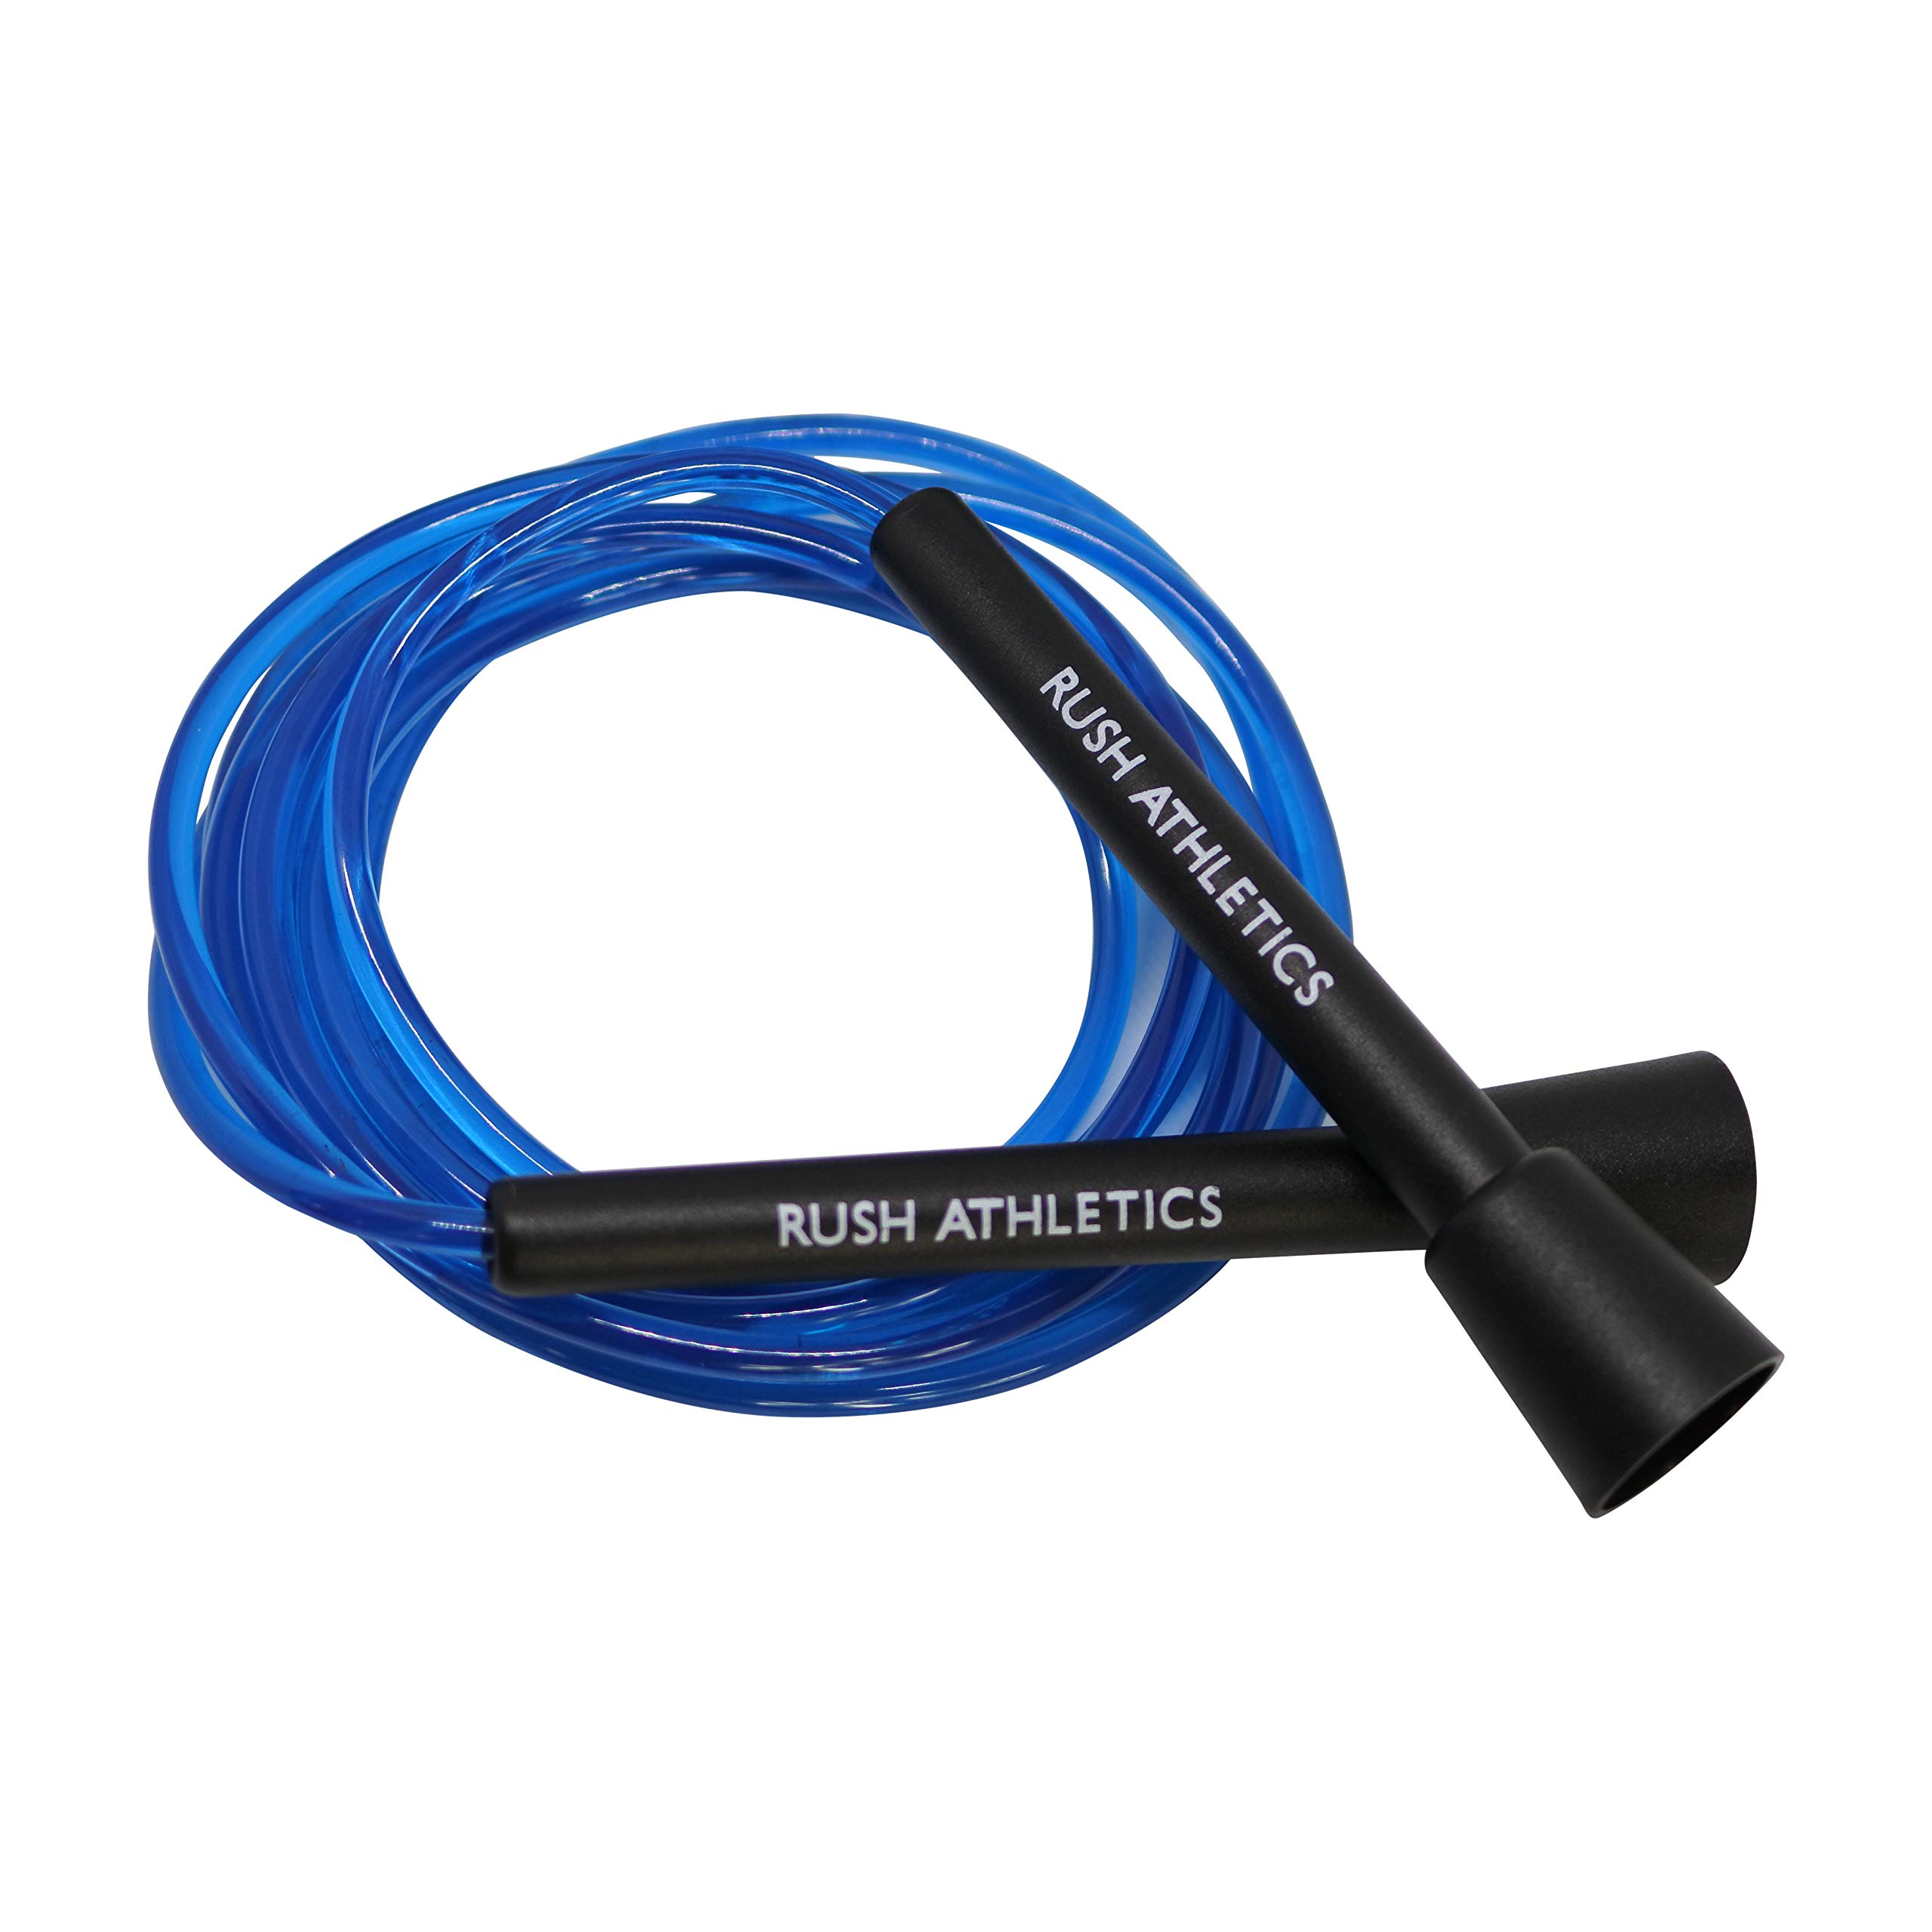 RUSH ATHLETICS Speed Rope ICE Blue- Best for Boxing MMA Cardio Fitness Training - Speed - Adjustable 10ft Jump Rope Sold